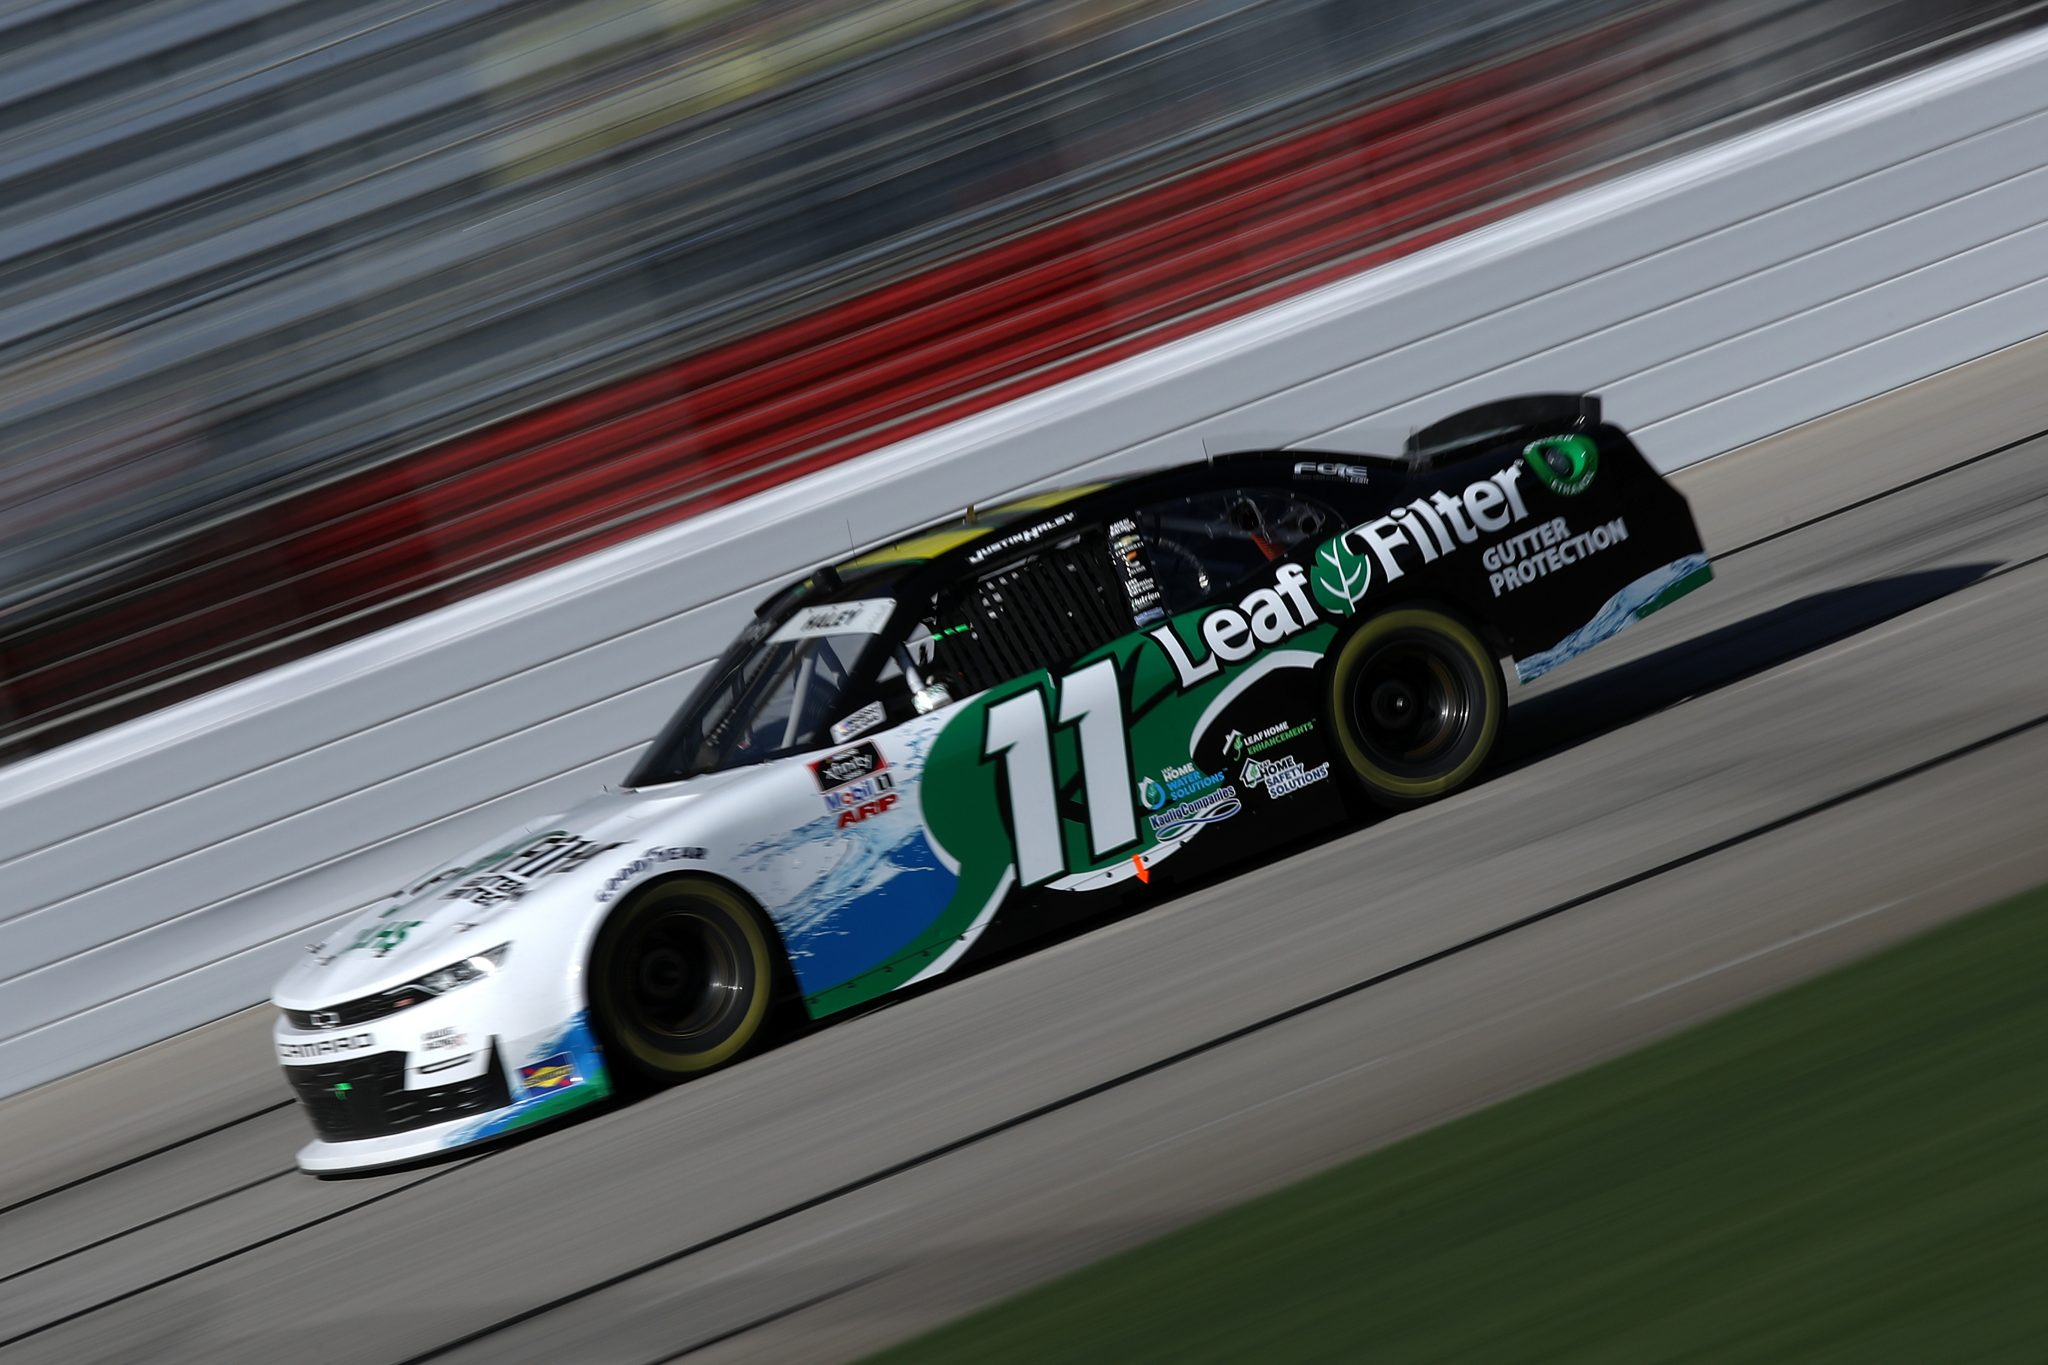 HAMPTON, GEORGIA - MARCH 20: Justin Haley, driver of the #11 LeafFilter Gutter Protection Chevrolet, drives during the NASCAR Xfinity Series EchoPark 250 at Atlanta Motor Speedway on March 20, 2021 in Hampton, Georgia. (Photo by Sean Gardner/Getty Images)   Getty Images